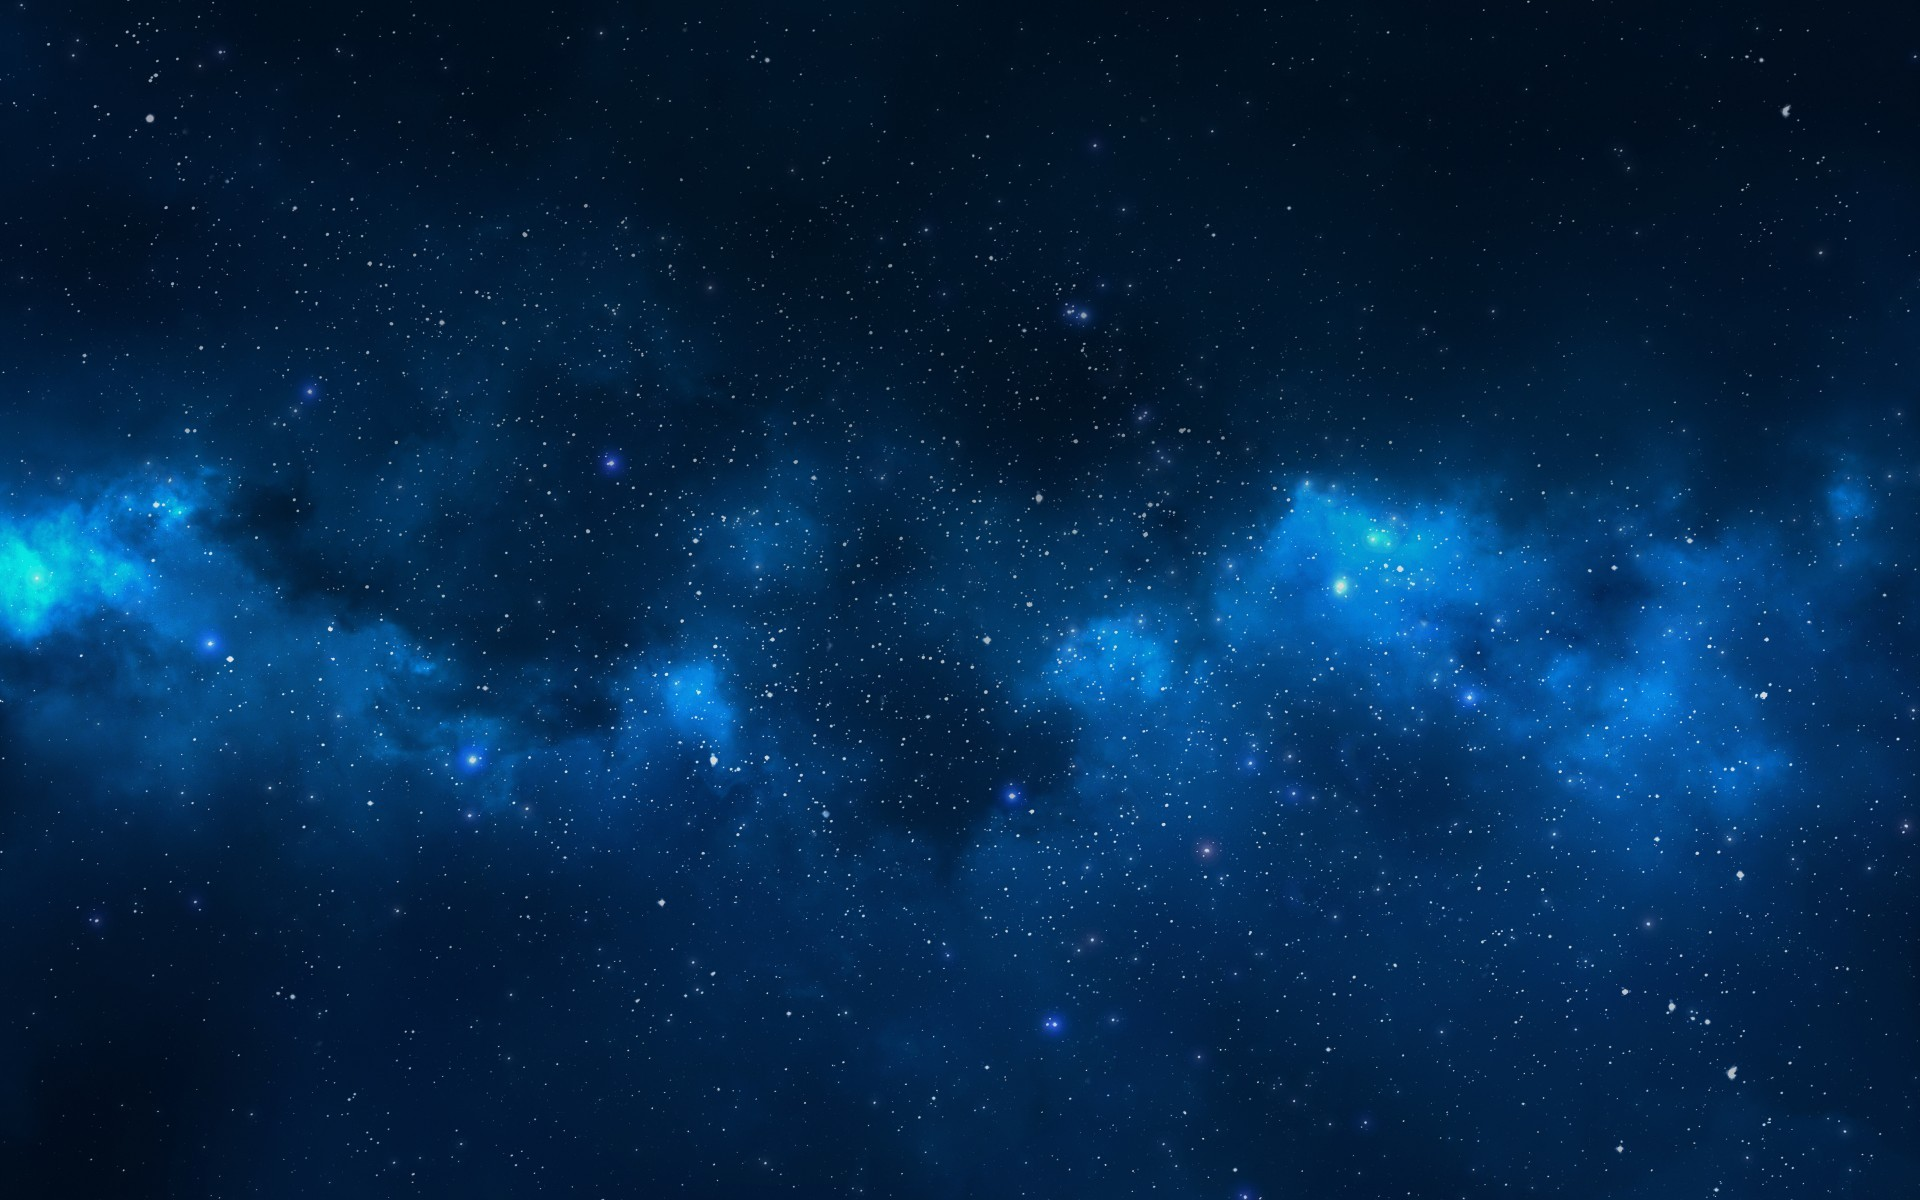 night sky wallpaper free